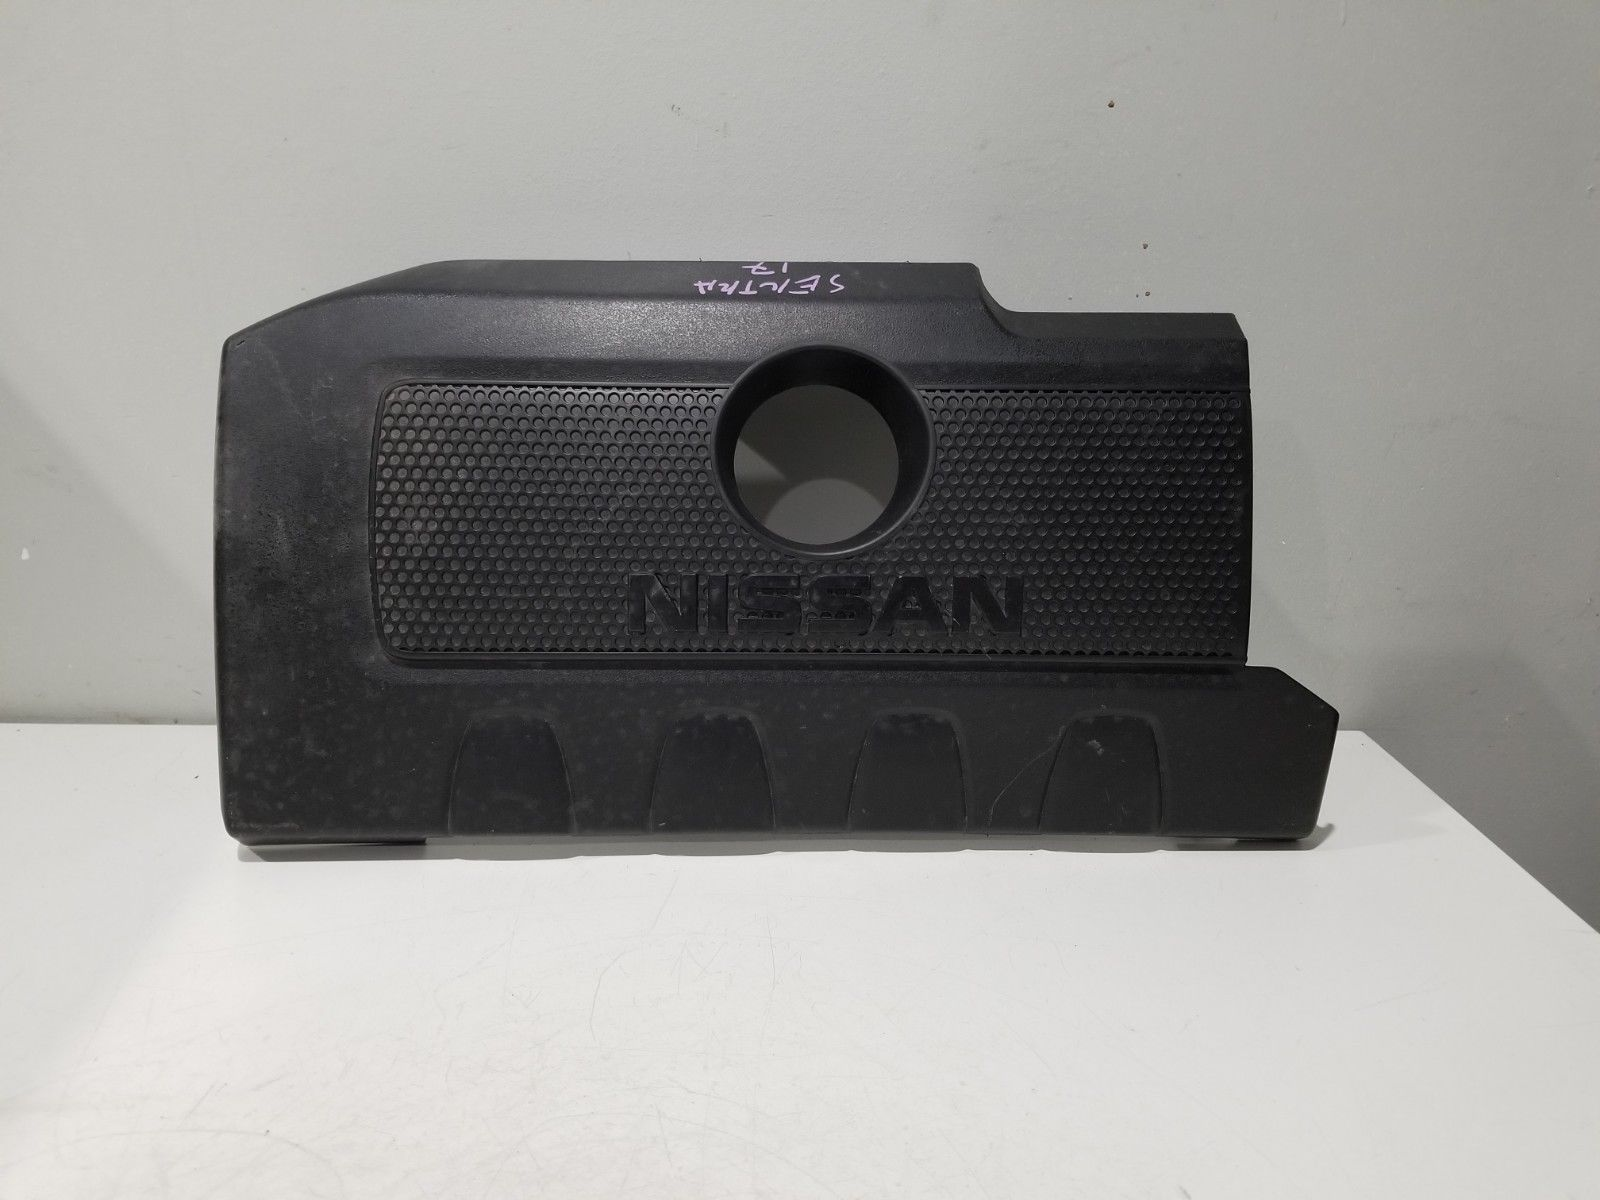 16-18 Nissan Sentra 1.8L Front Engine Appearance Cover OEM 140413RC1B